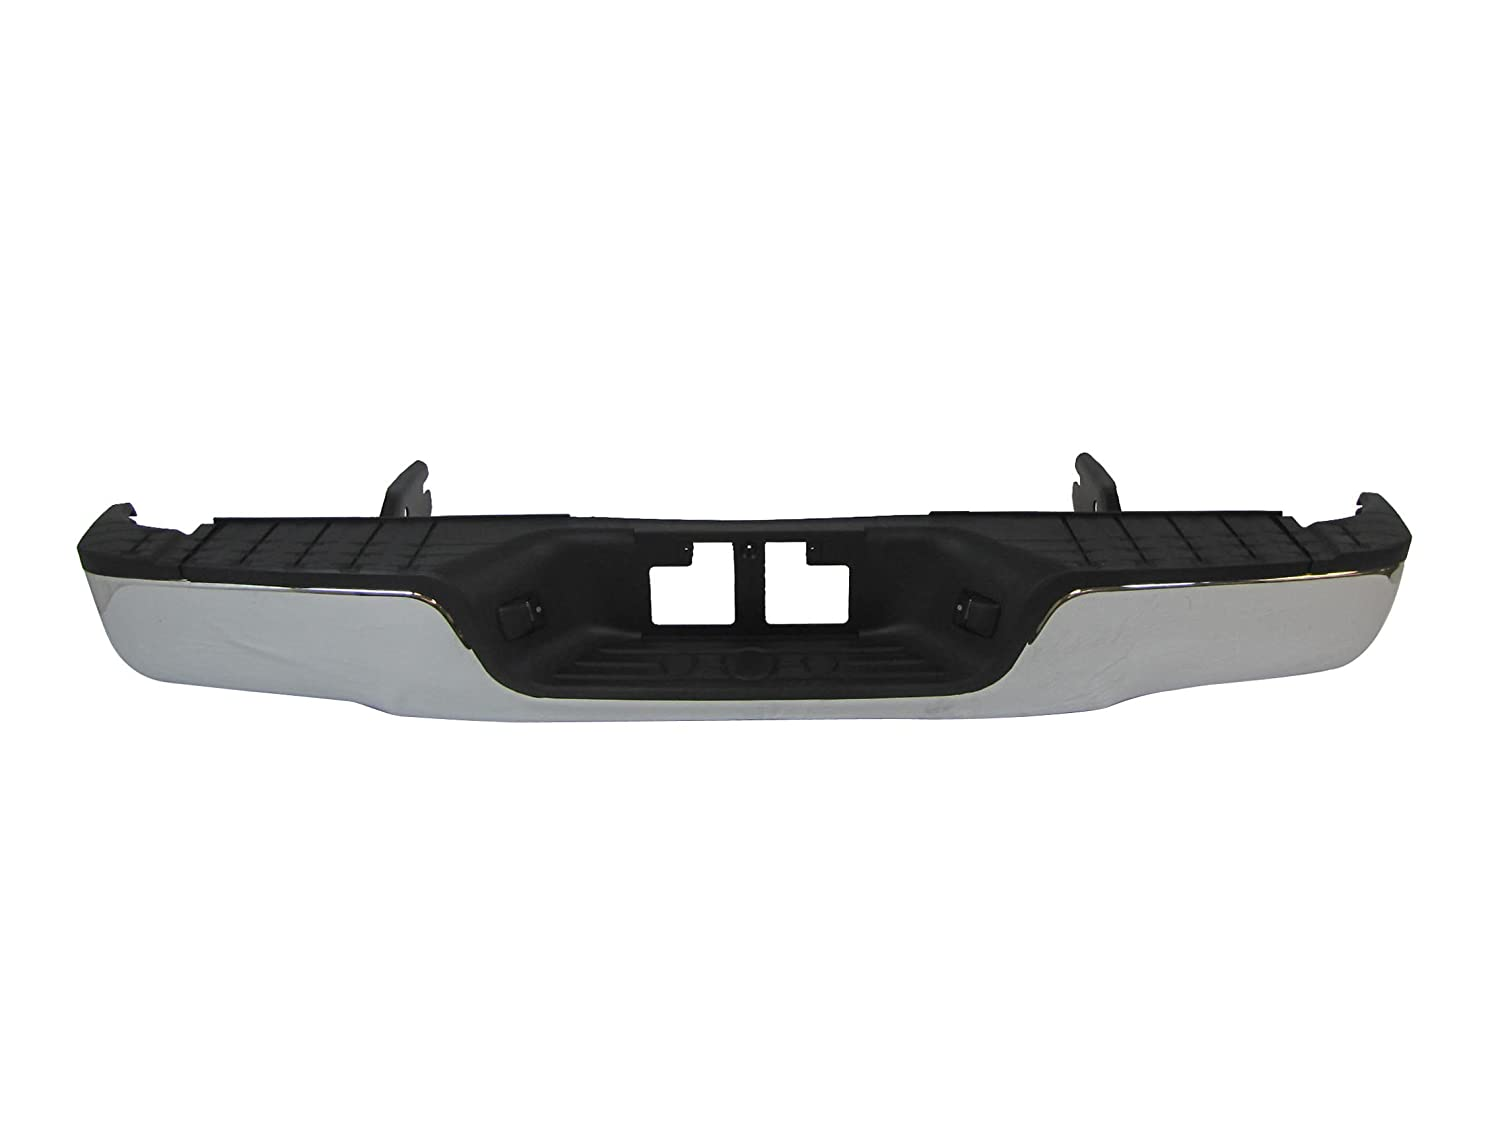 07-11 TOYOTA TUNDRA REAR STEP BUMPER FACE BAR CHROME FULL ASSY WITH TOP PAD  & BUMPER SUPPORT,WITHOUT SENSOR HOLE